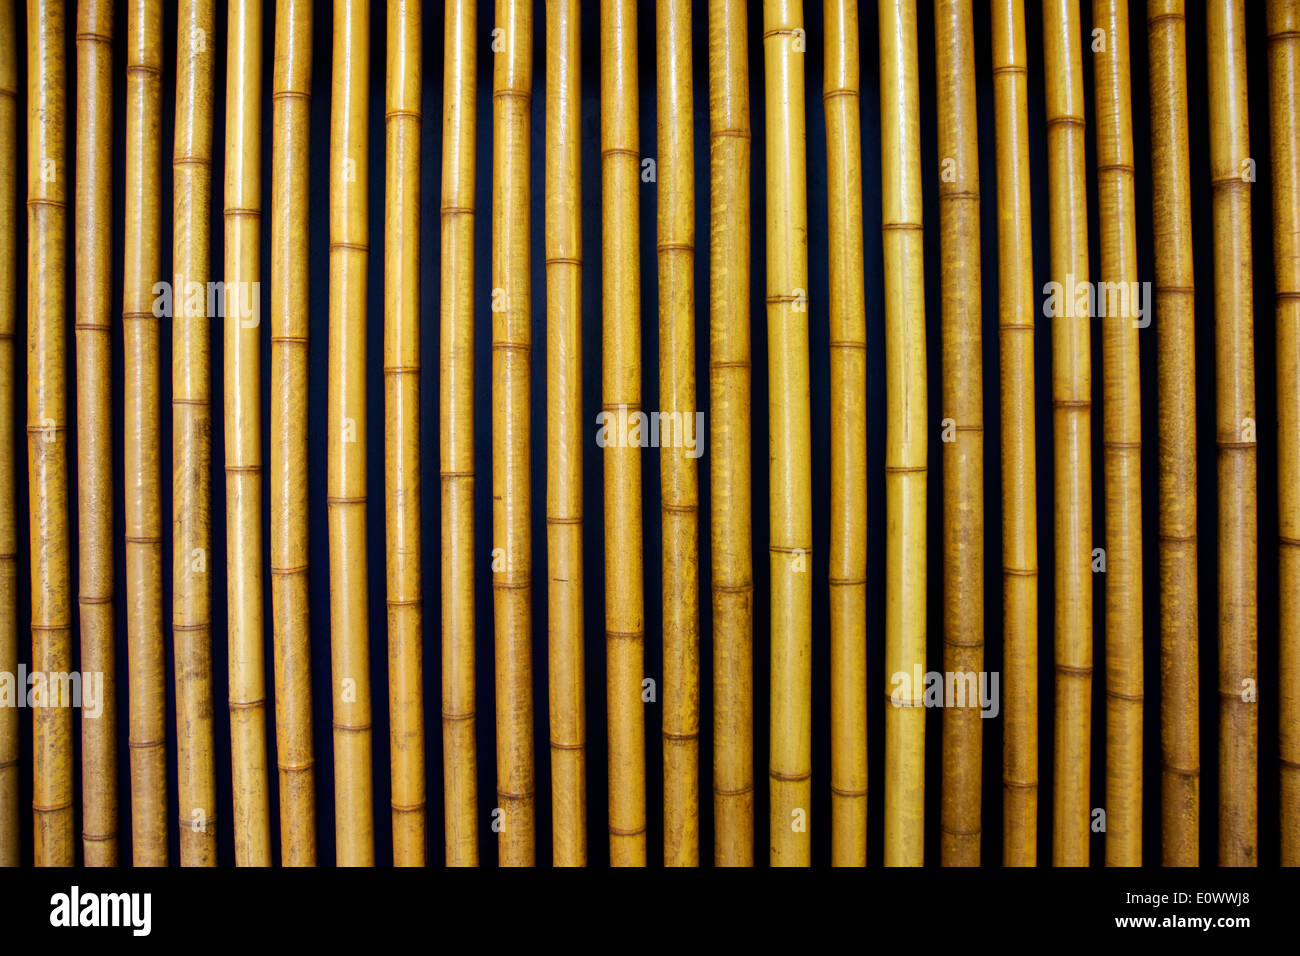 Parallel bars of Bamboo as a wall decoration - Stock Image